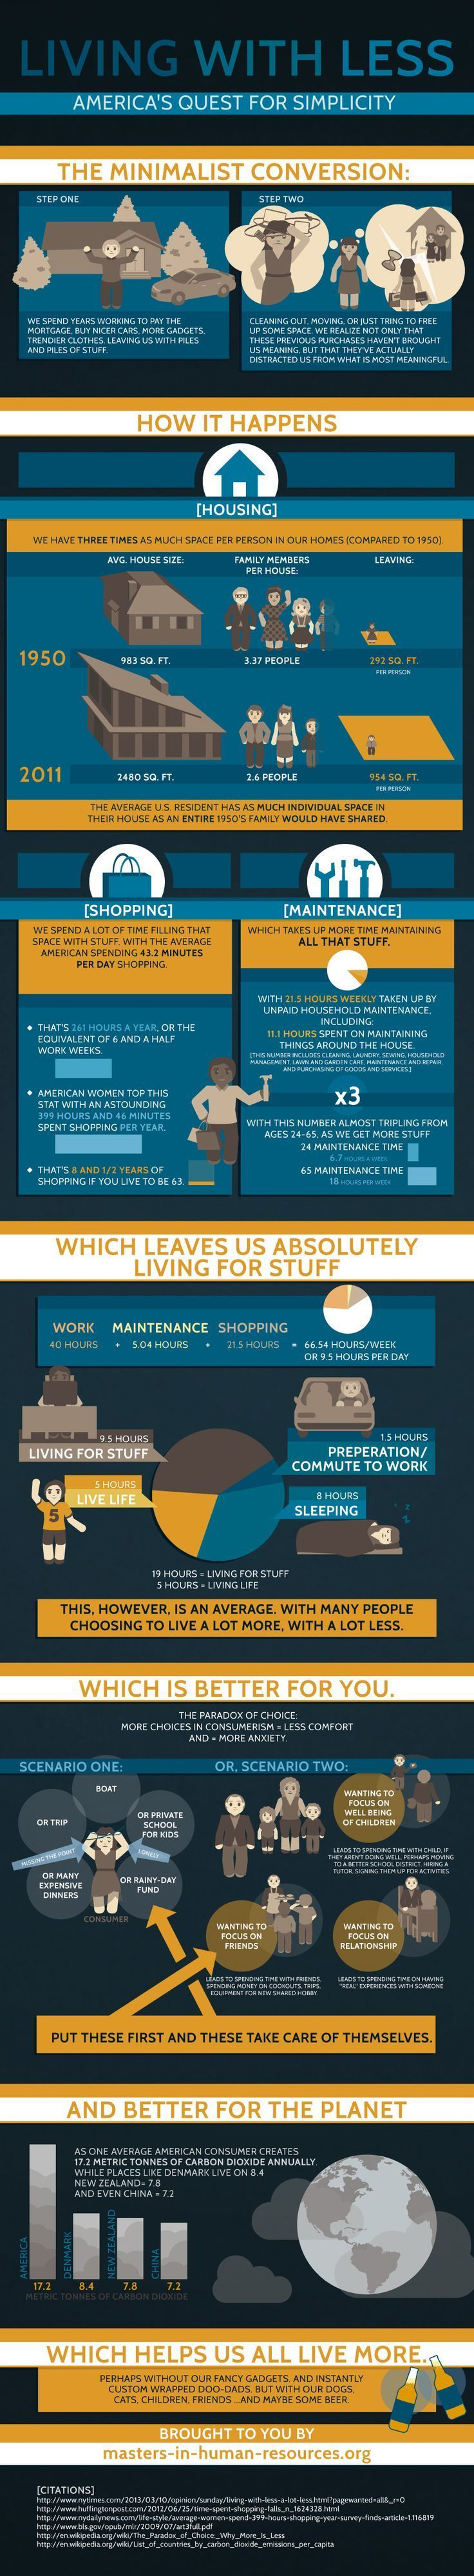 Living With Less infographic - To connect with us, and our community of people from Australia and around the world, learning how to live large in small places, visit us at www.Facebook.com/... or at www.tumblr.com/...